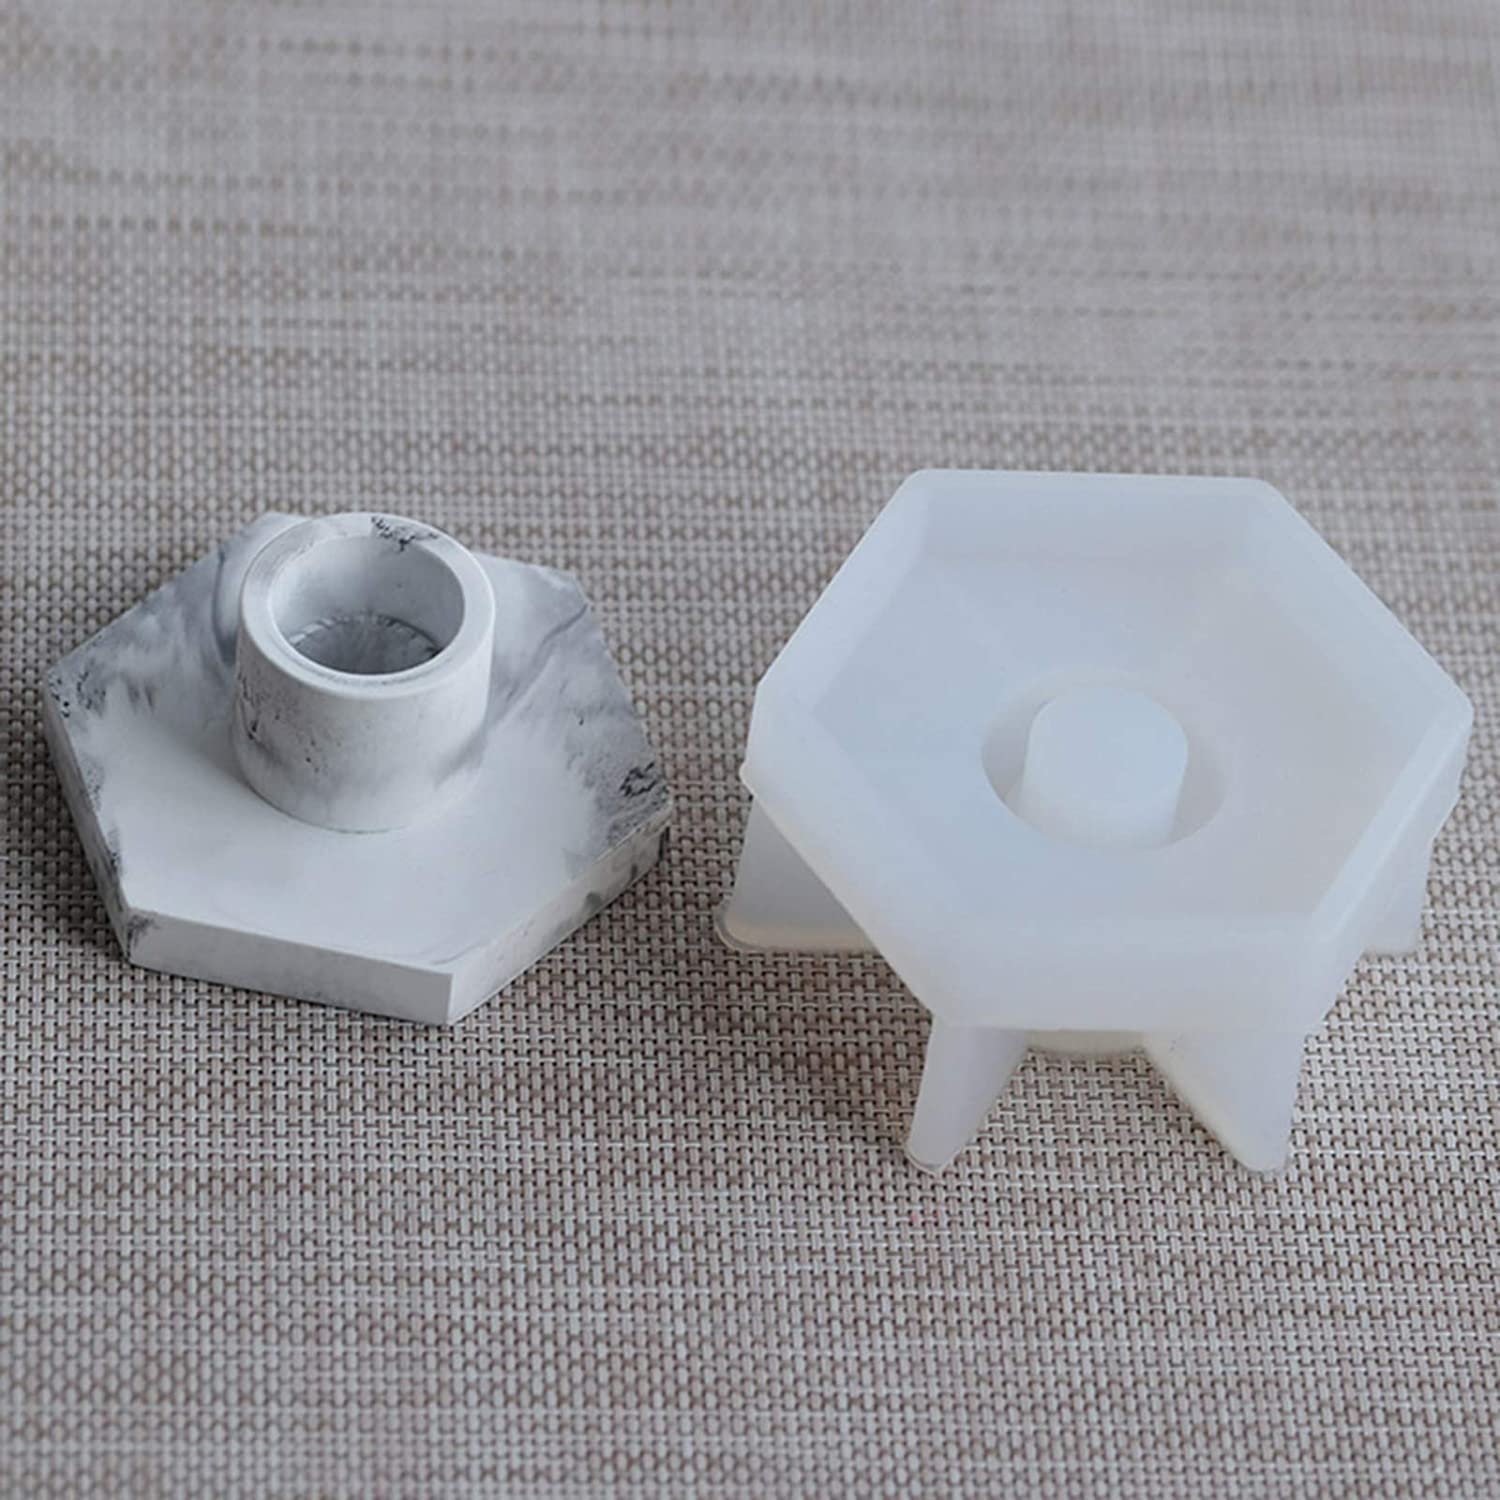 Candlestick Epoxy Resin Molds Silicone Mold Concrete Candlestick ...